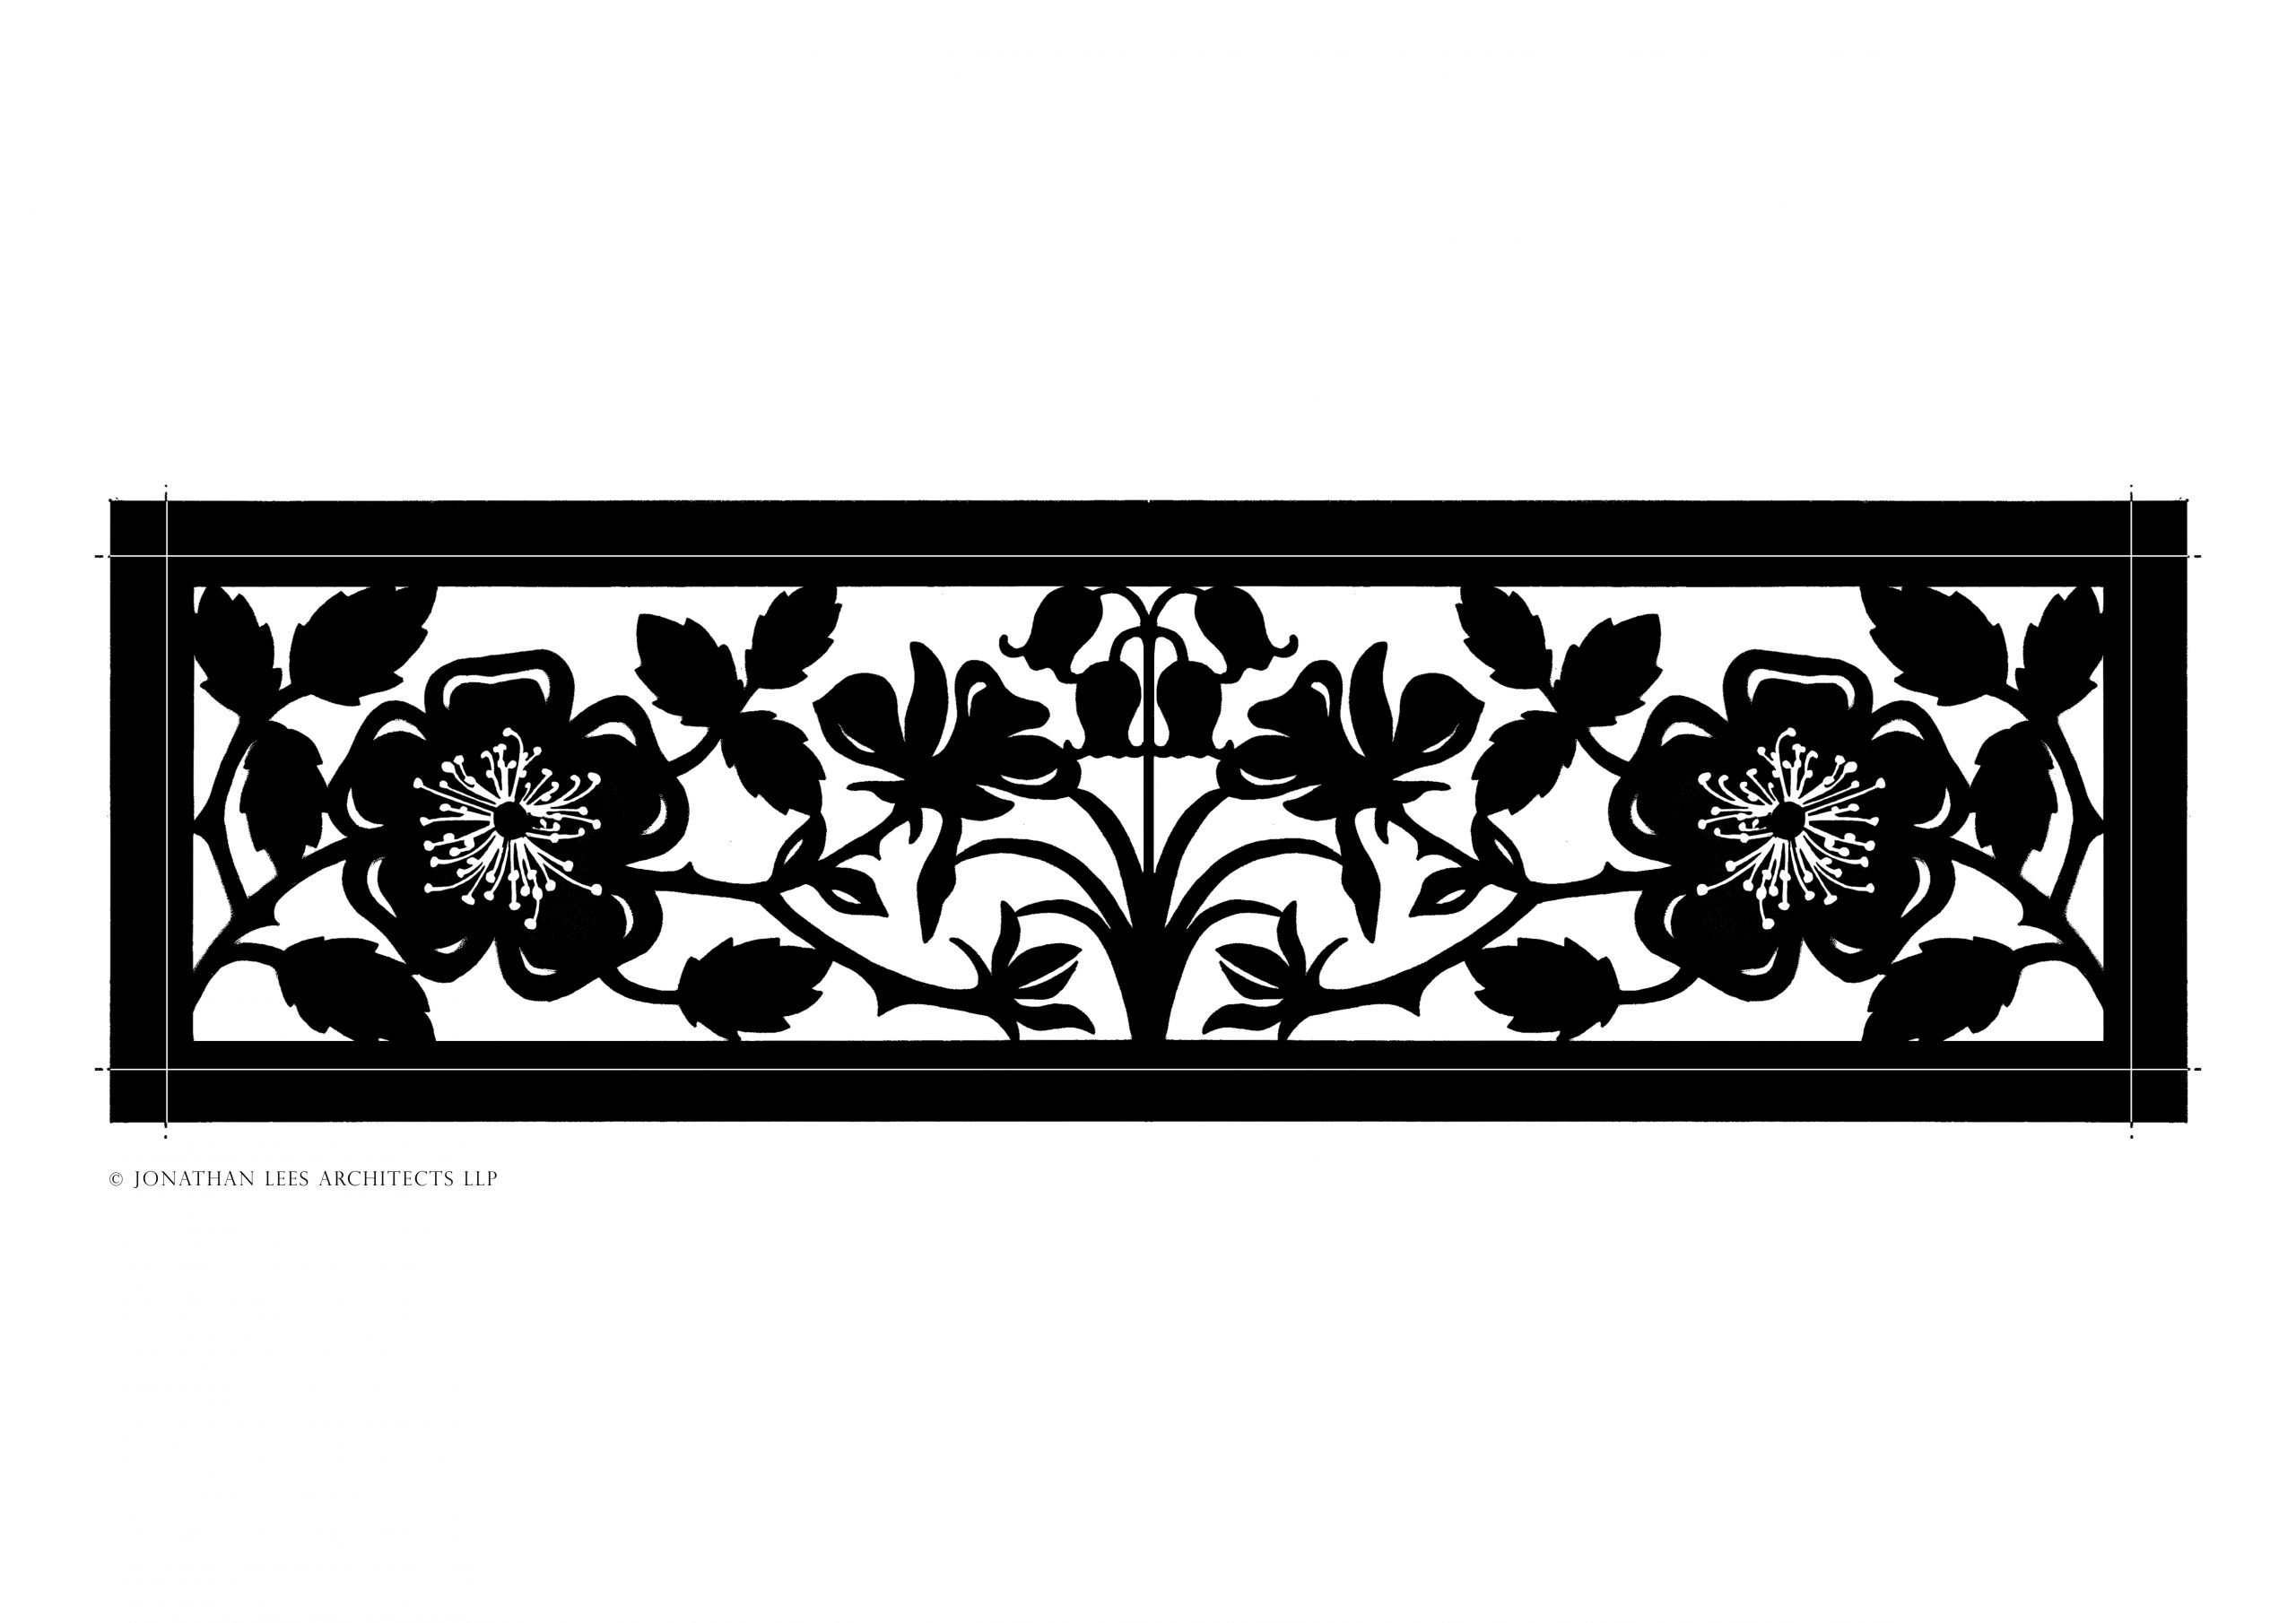 Decorative metal cut out design for heating vents